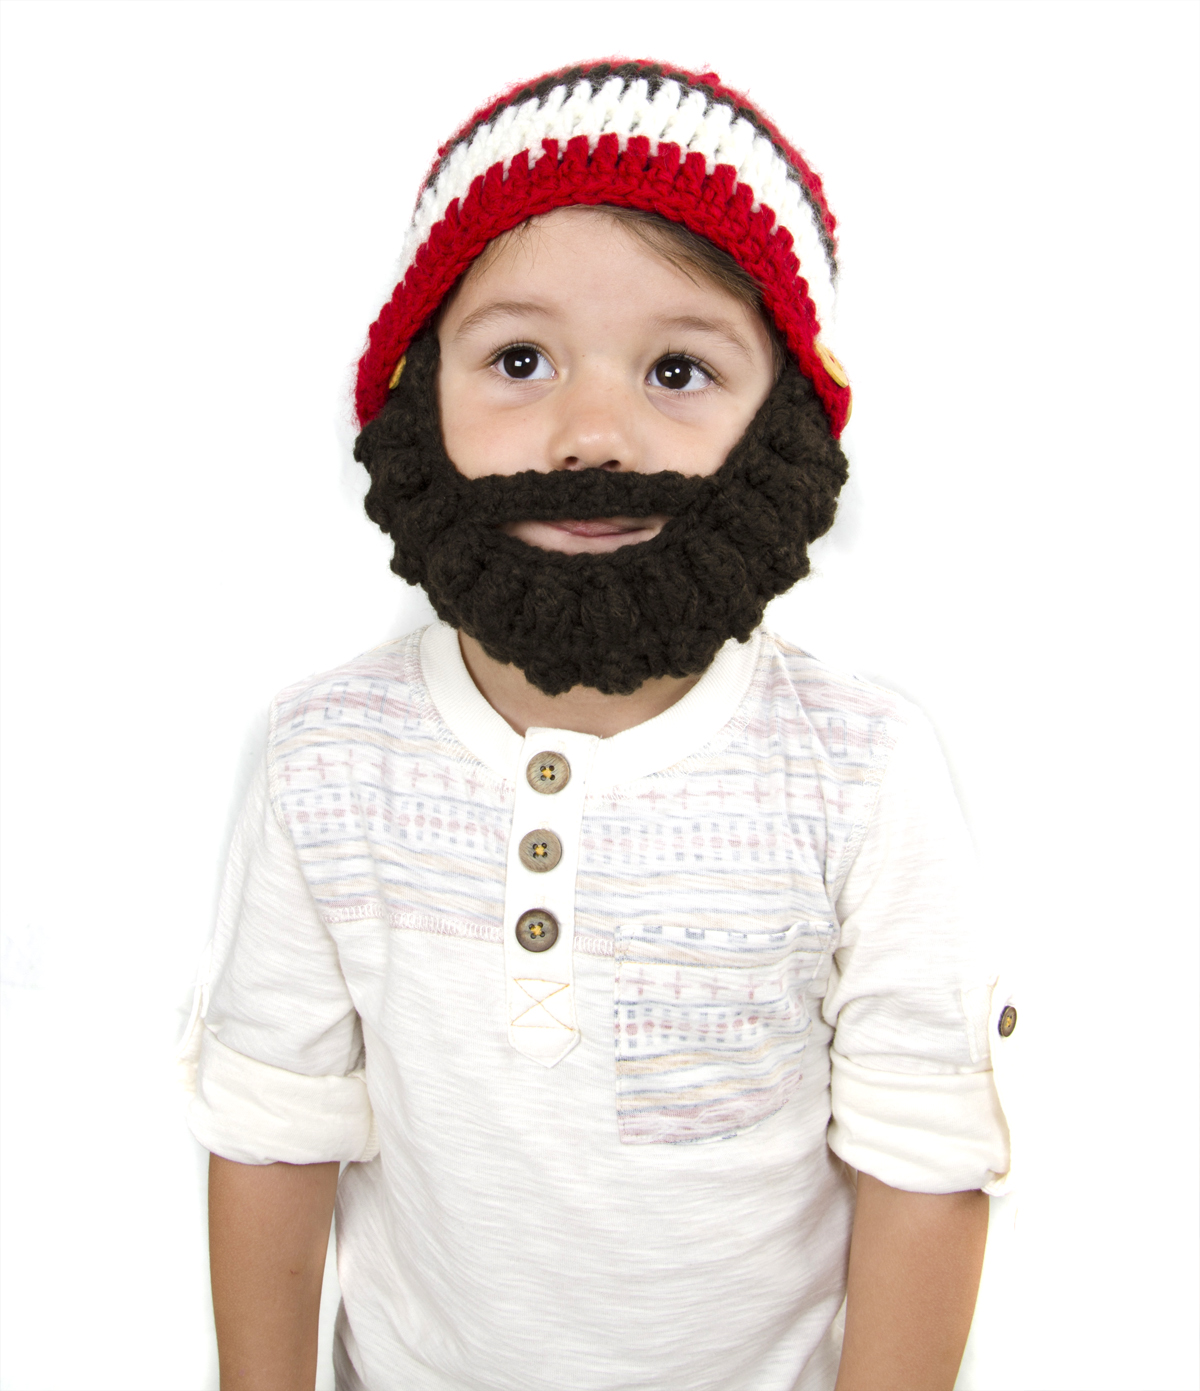 062ac757d90 Small Beard Beanie - Red Lumberjack Beard Hat for baby and toddler. Soft